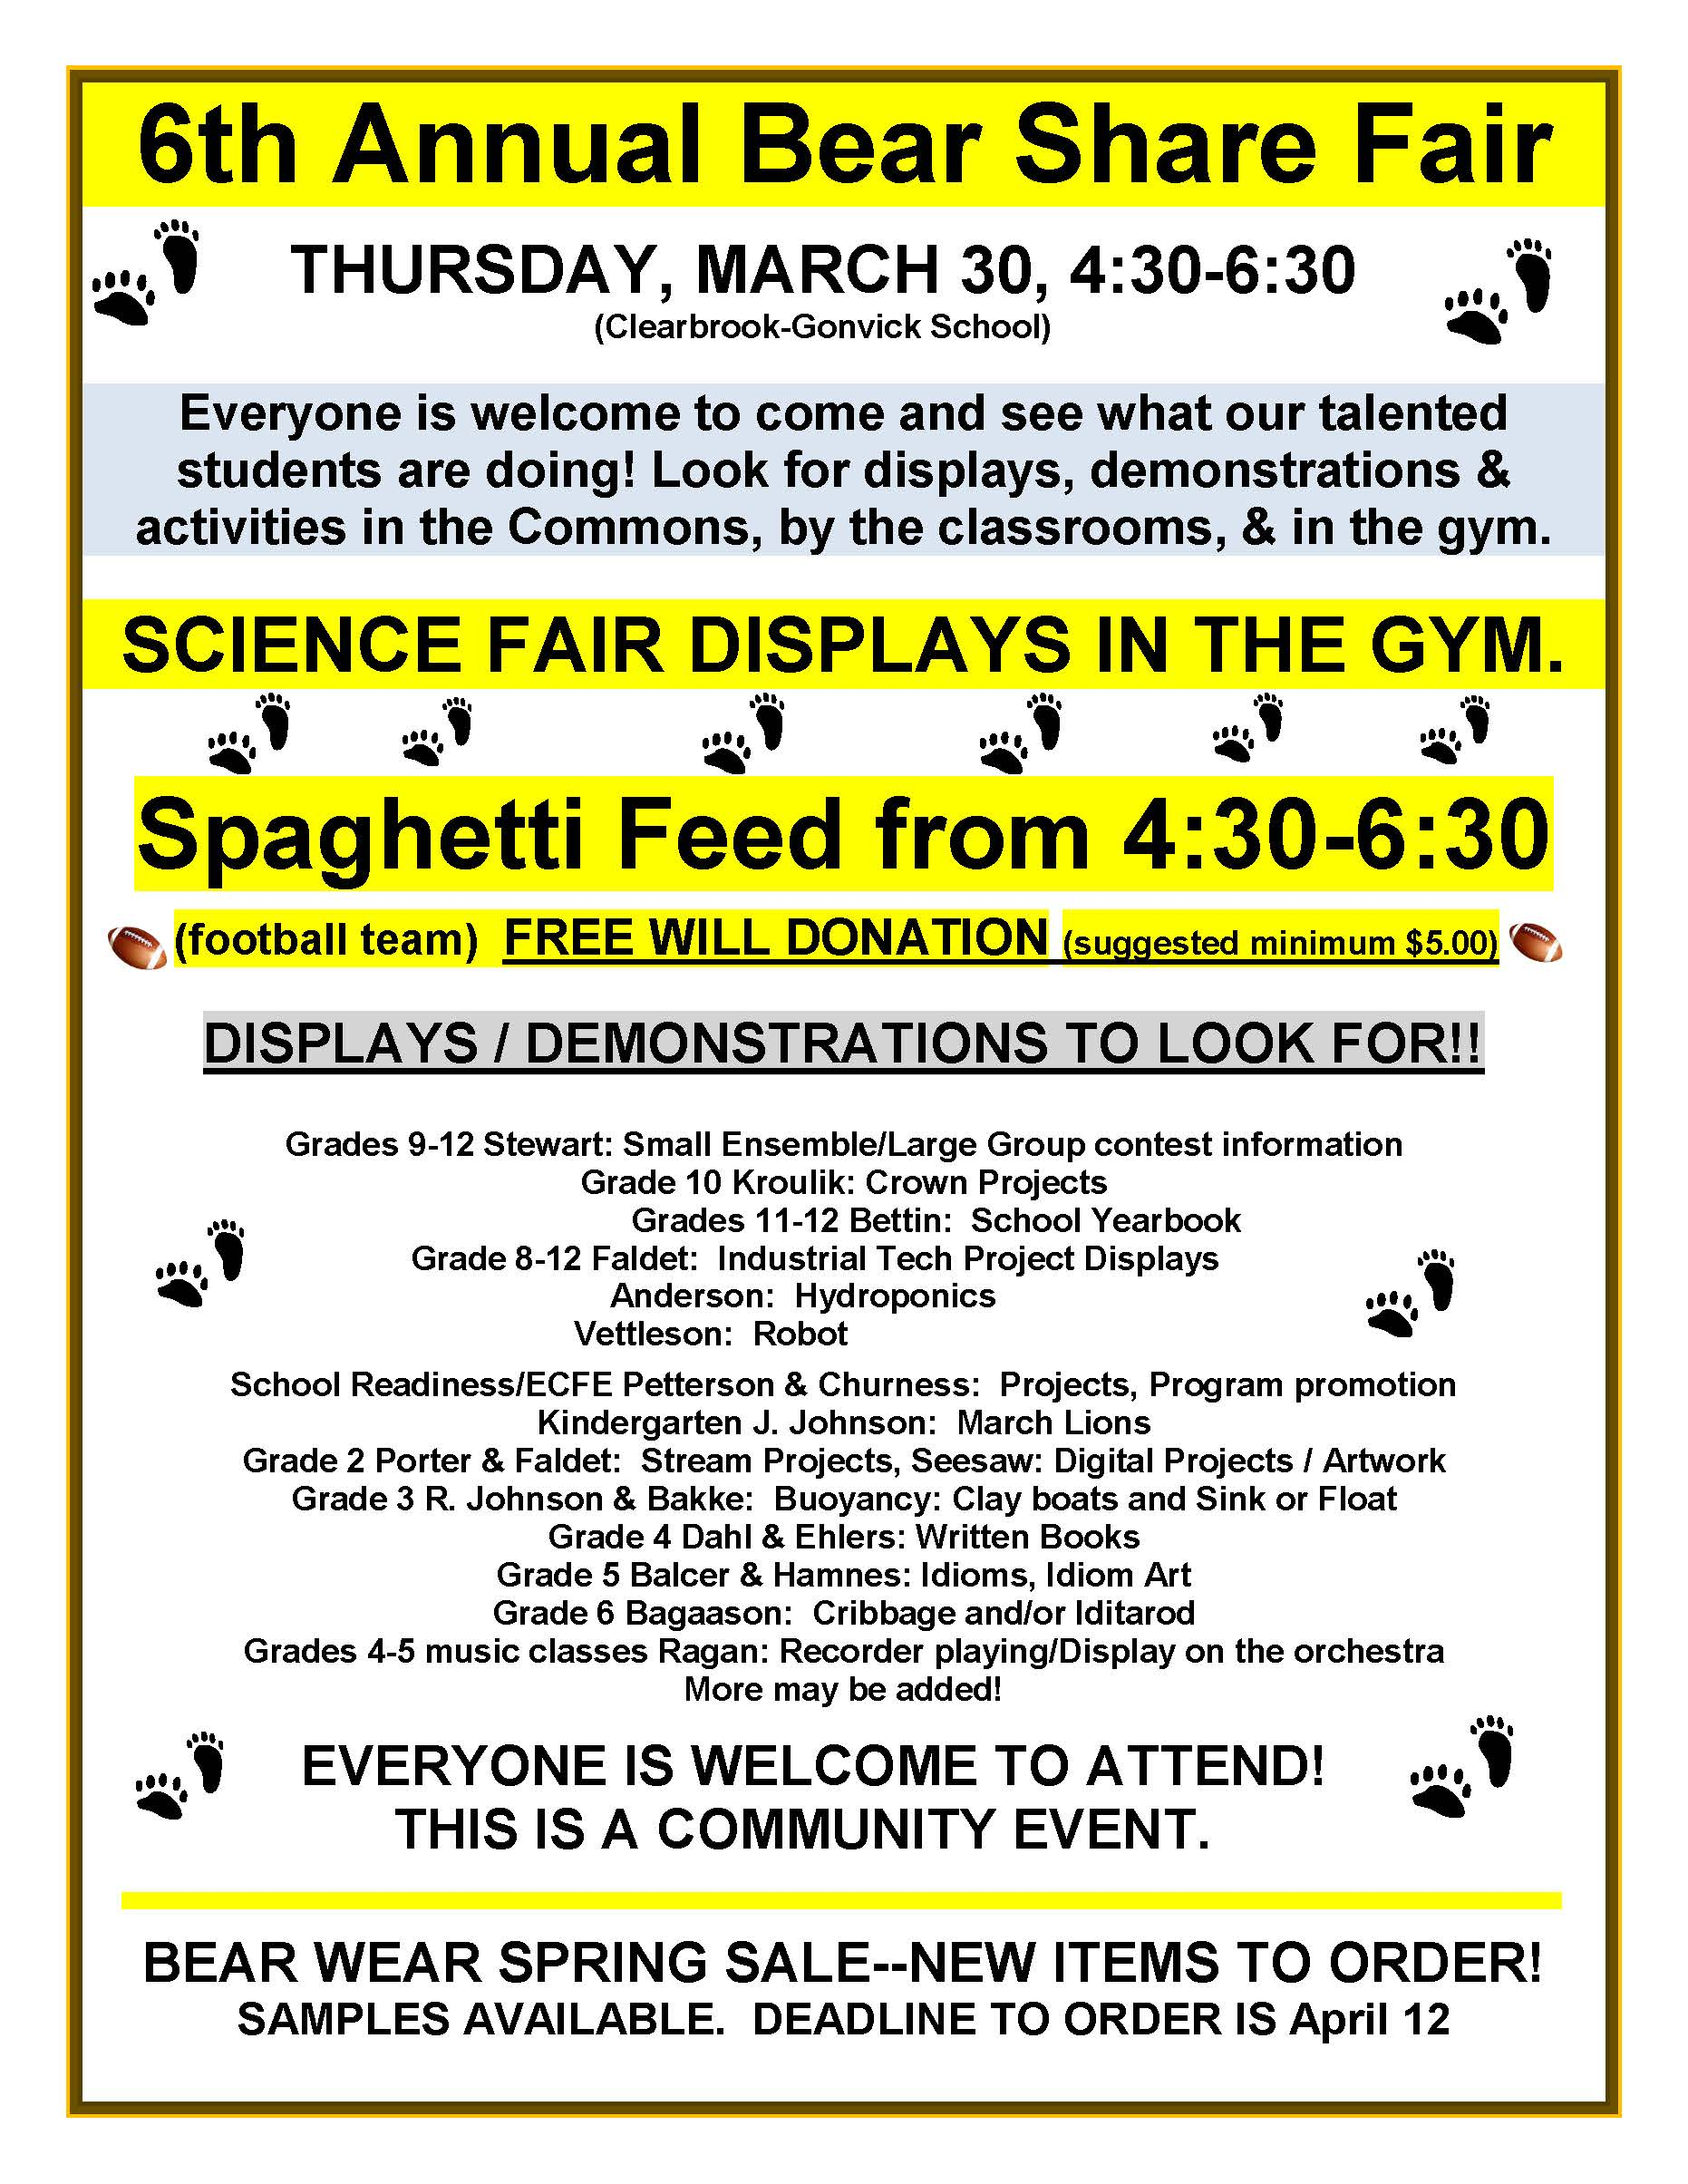 clearbrook gonvick district bear share science fair inserted image